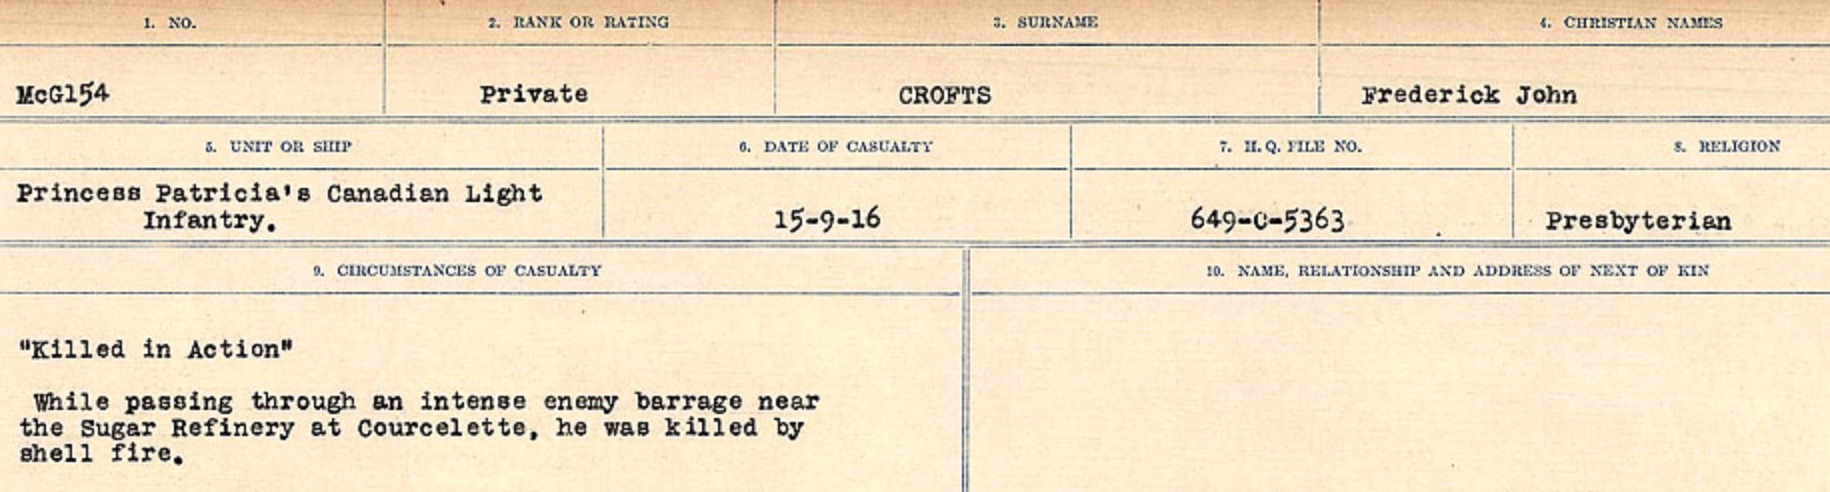 Circumstances of death registers– Source: Library and Archives Canada. CIRCUMSTANCES OF DEATH REGISTERS, FIRST WORLD WAR Surnames: CRABB TO CROSSLAND Microform Sequence 24; Volume Number 31829_B016733. Reference RG150, 1992-93/314, 168. Page 625 of 788. Buried 3 miles North East of Albert.